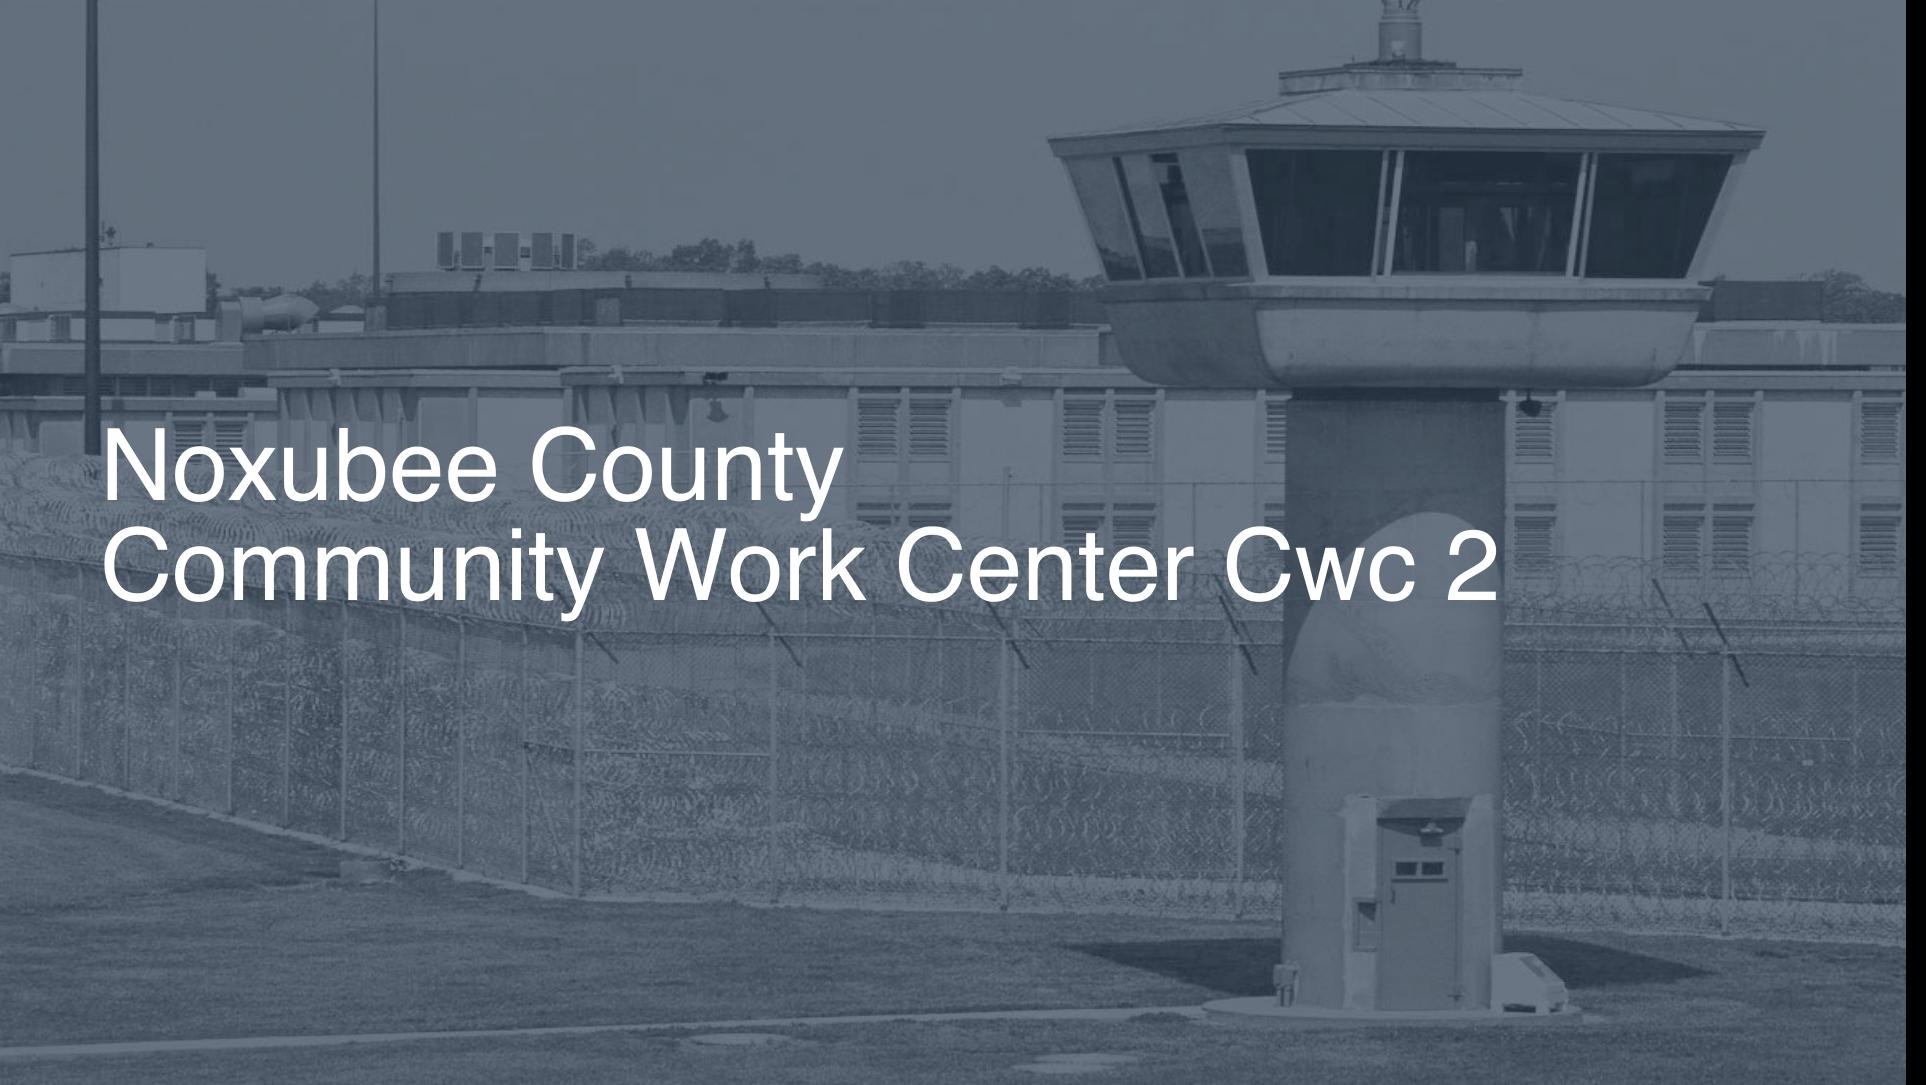 Noxubee County Community Work Center (CWC) correctional facility picture